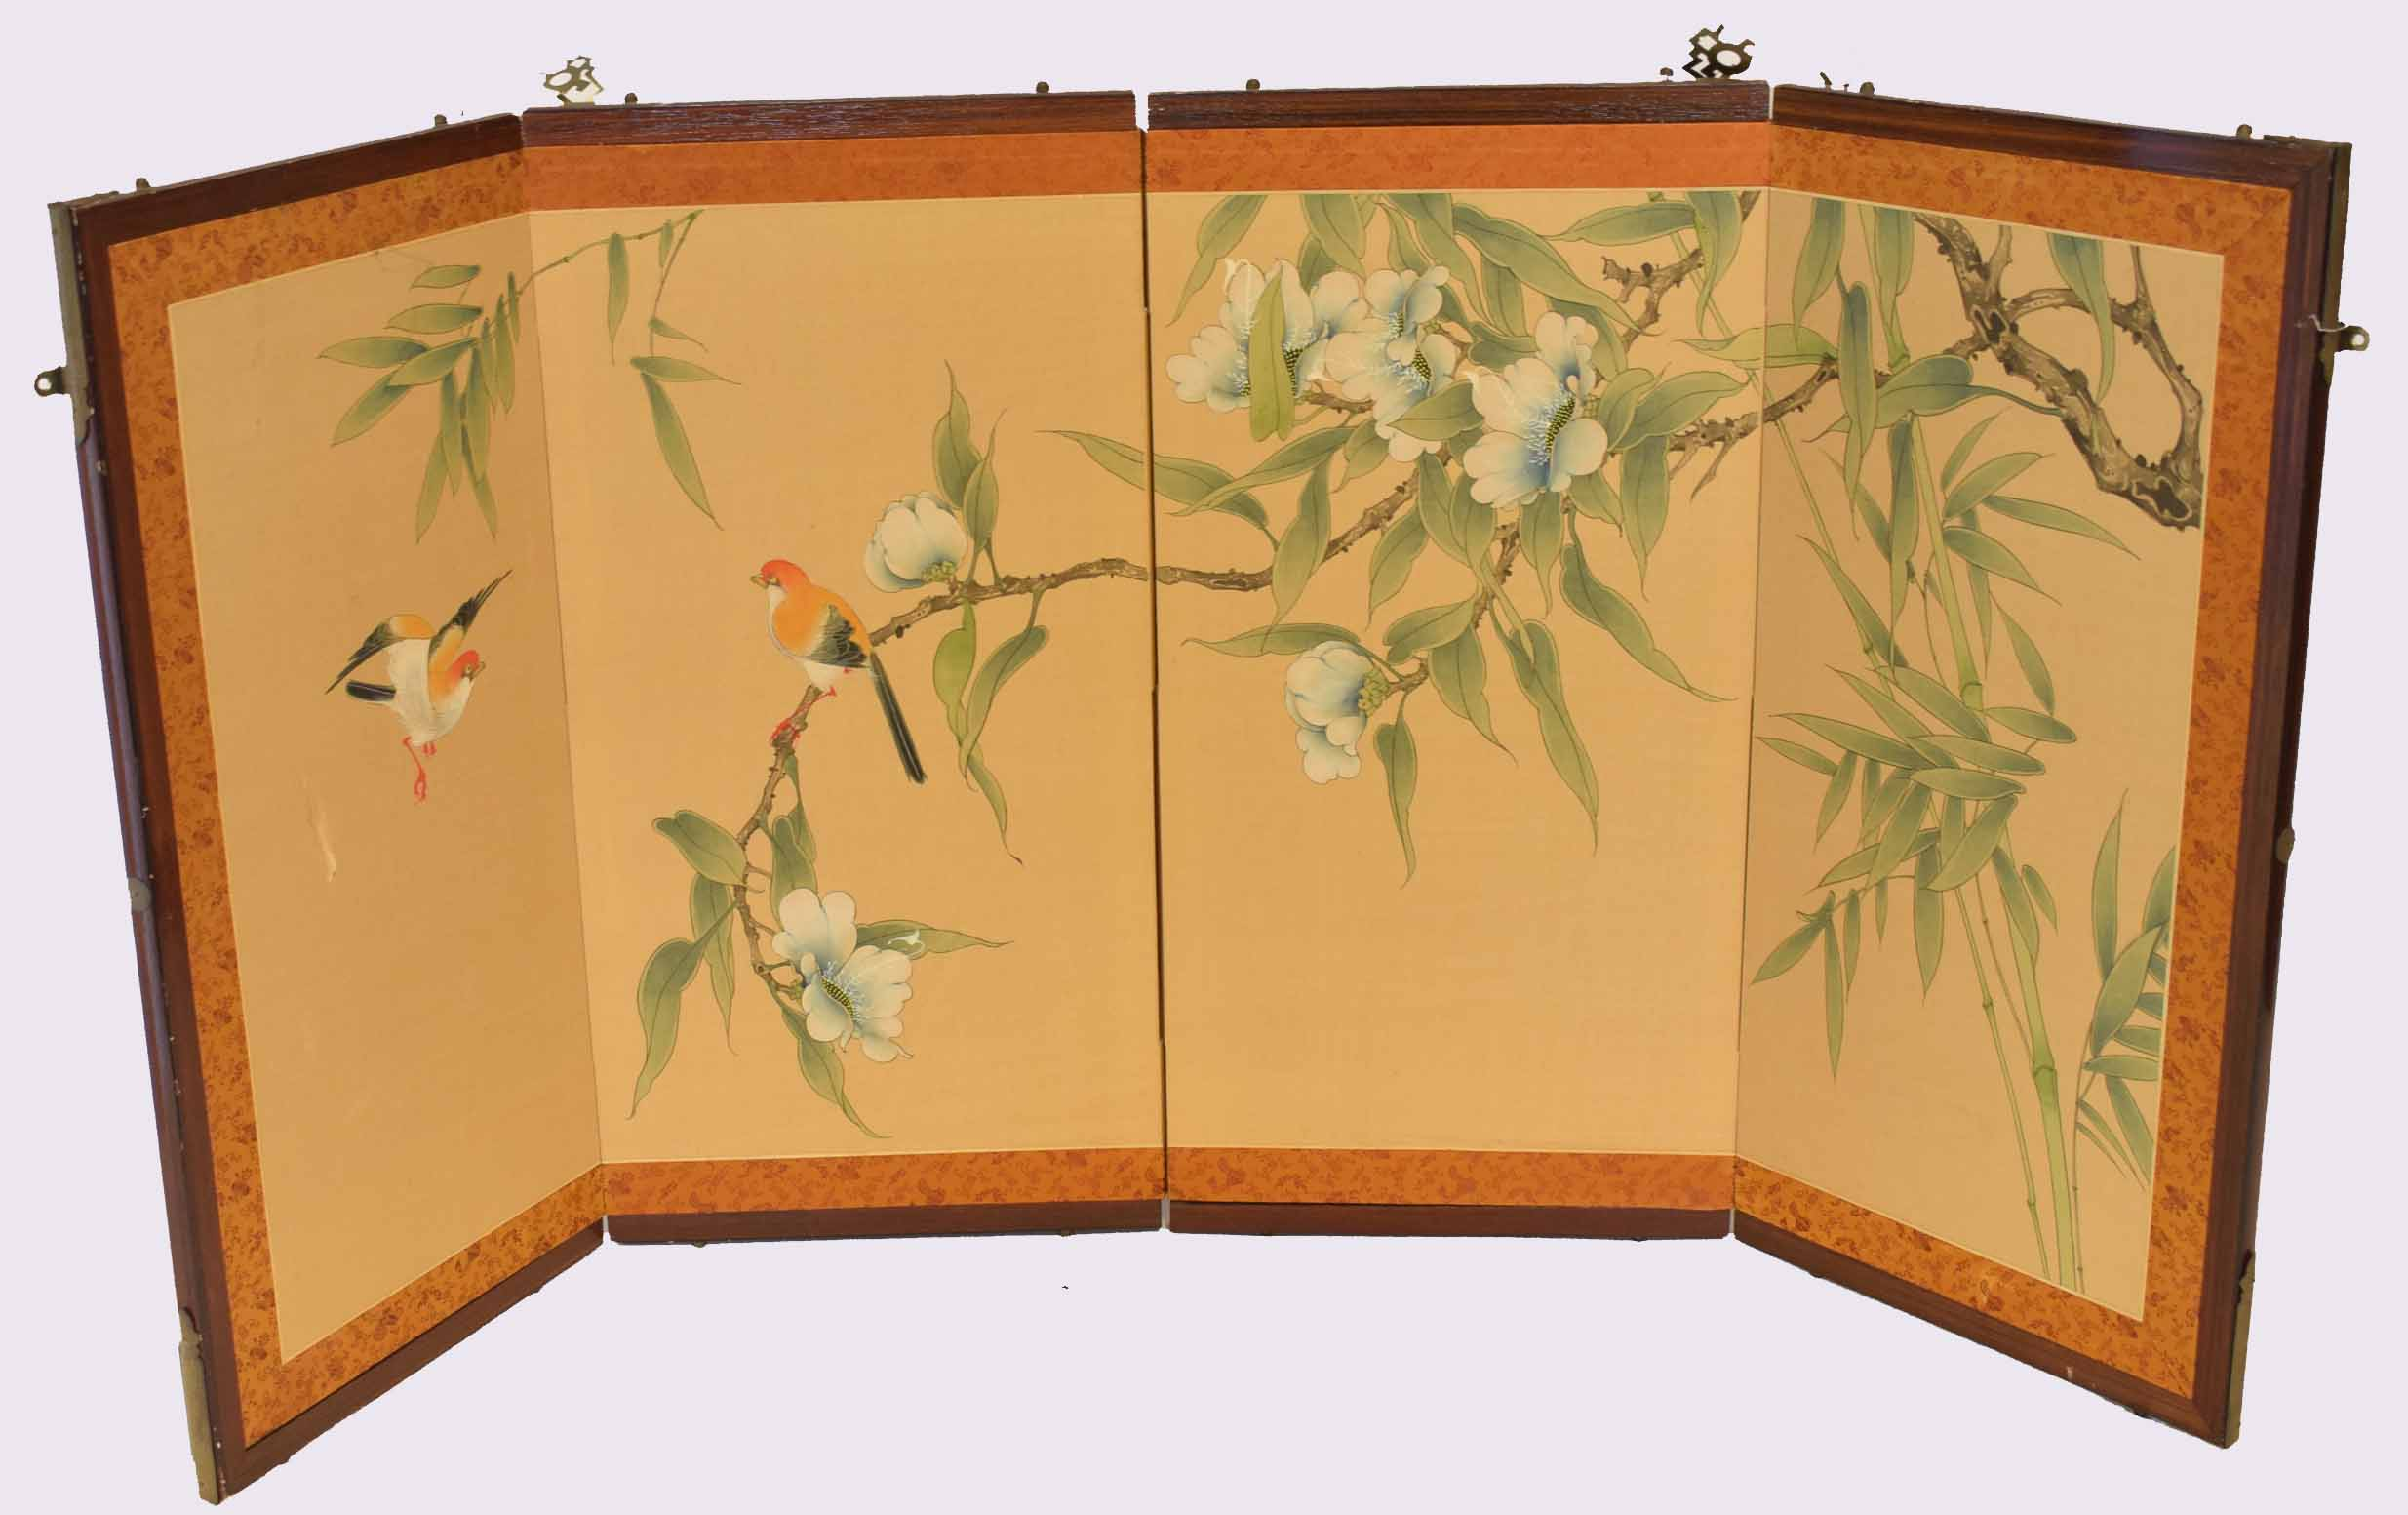 Lot 40 - Small Oriental four-section screen in wooden frame with watercolour decoration of birds in branches,